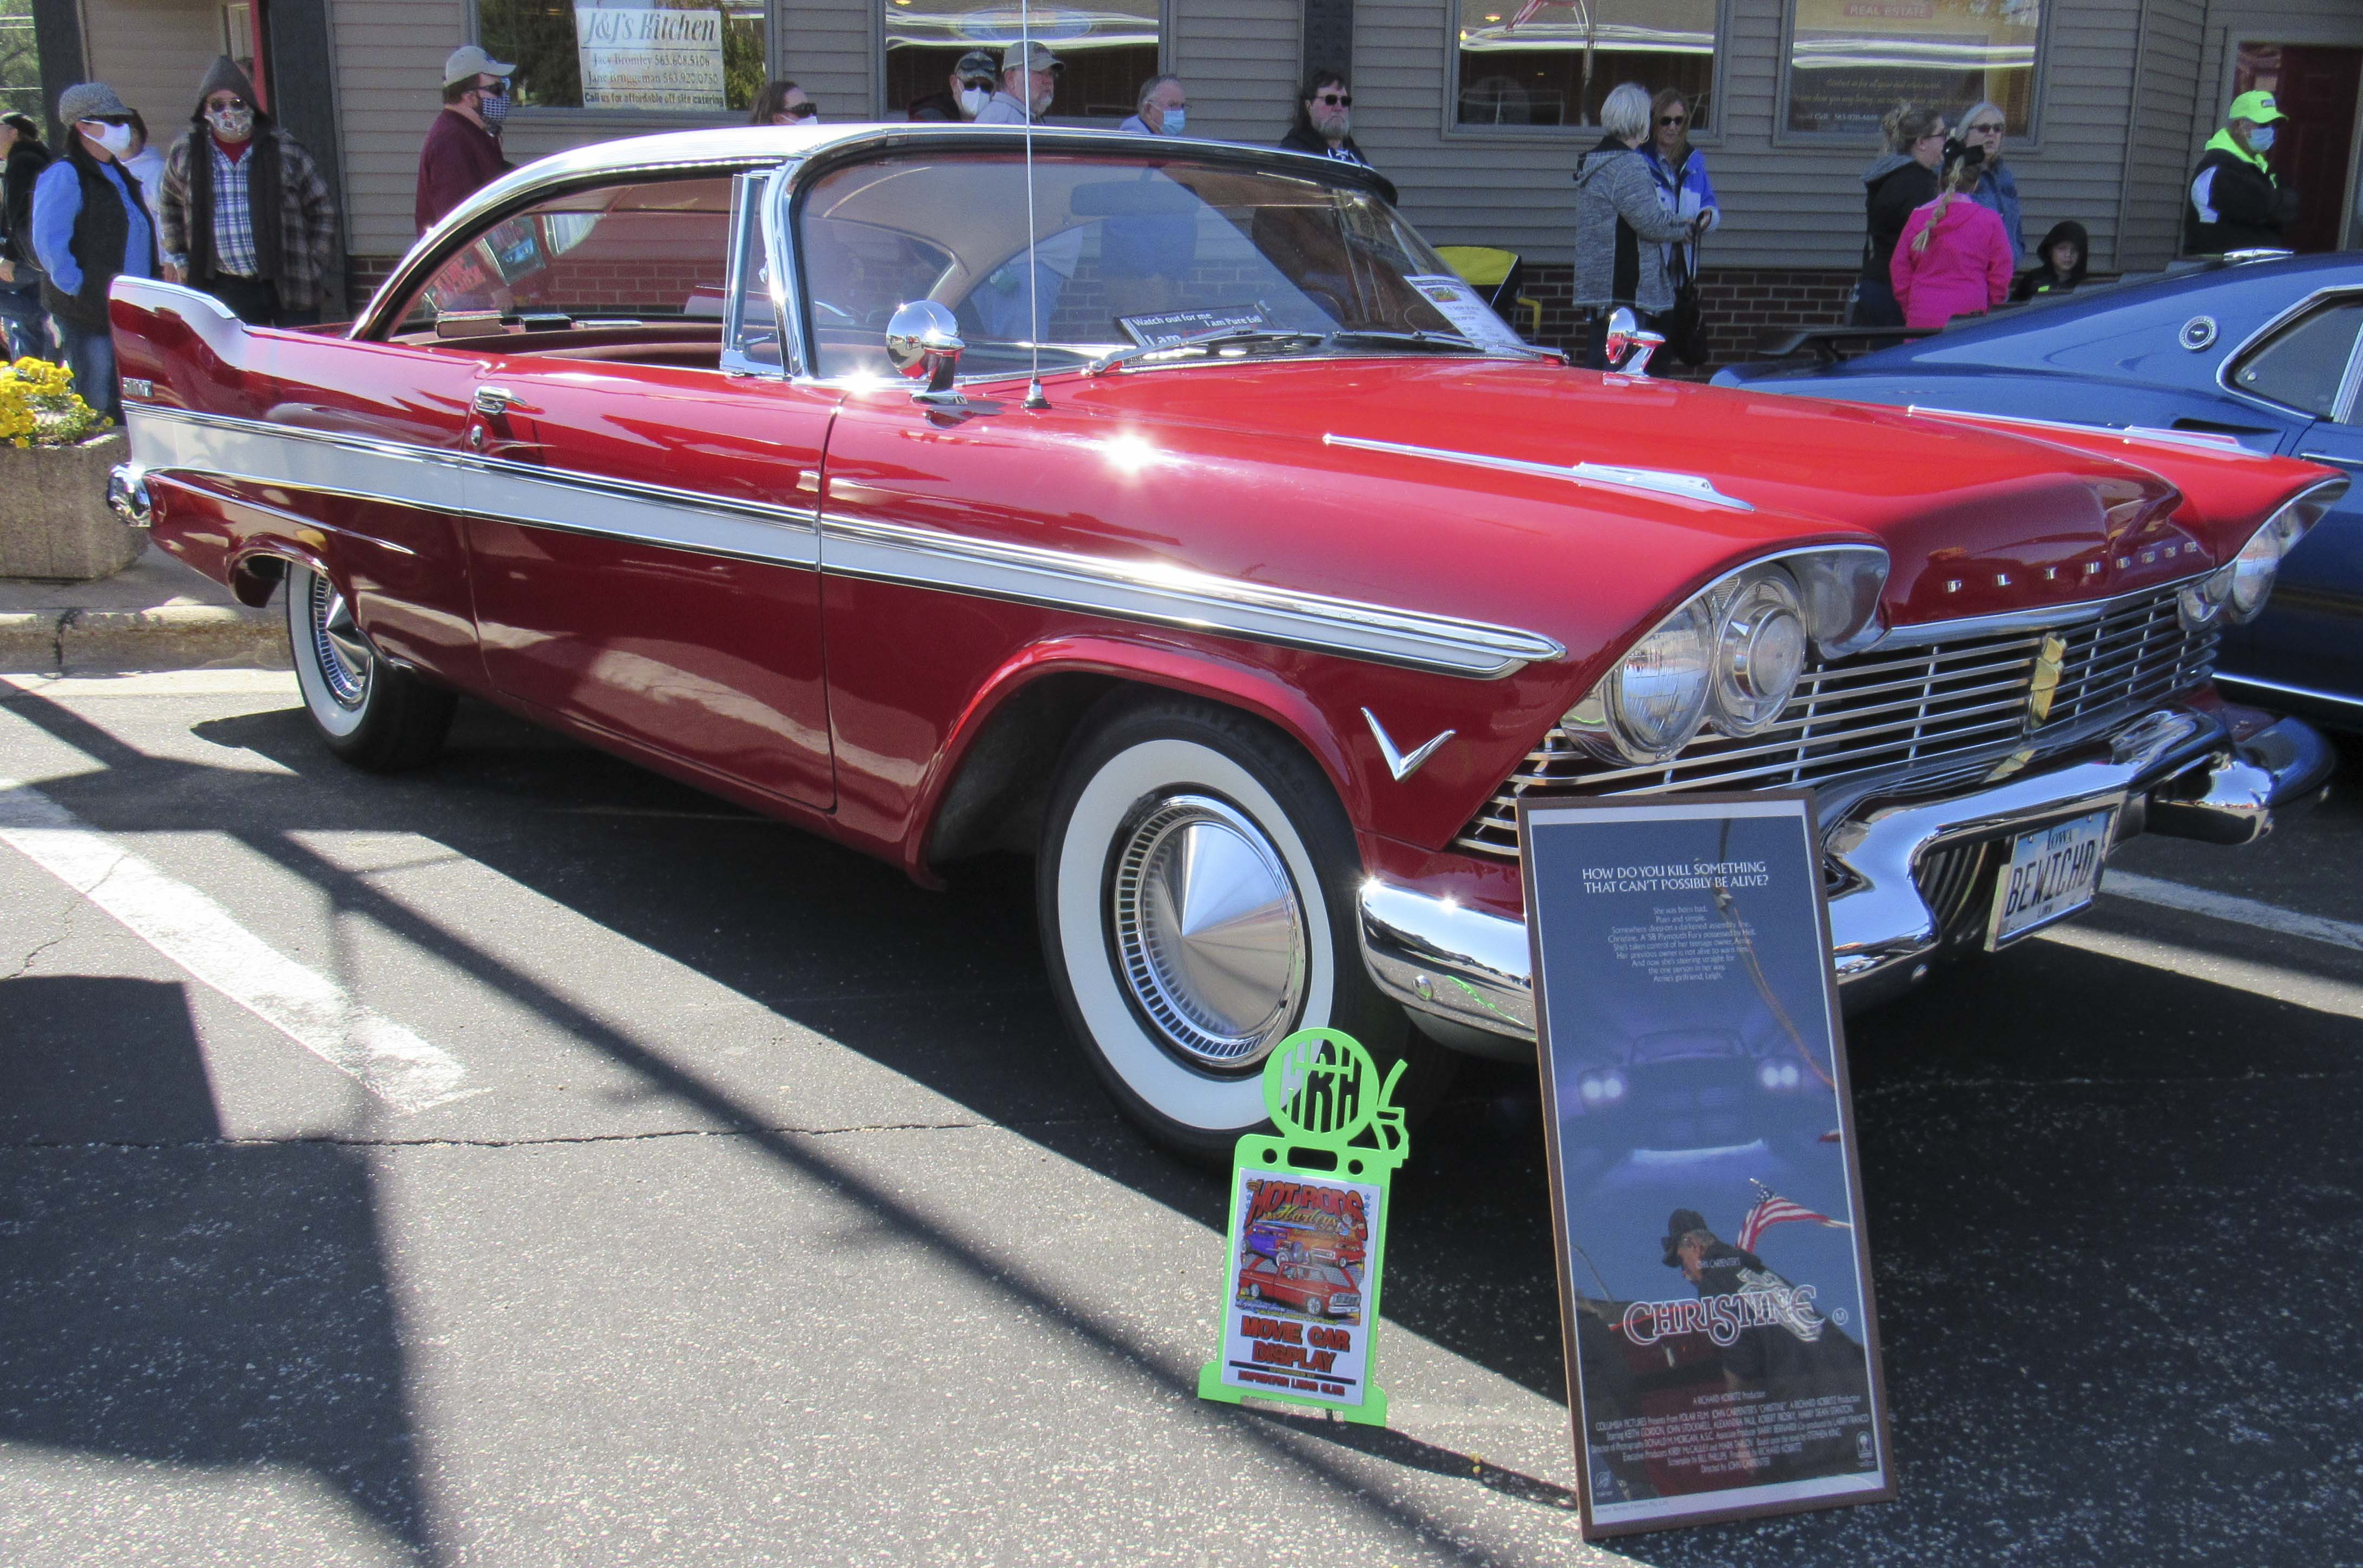 """Hopkinton was the place to be on Sunday, Oct. 4, for Hot Rods & Harleys Car Show. The annual event featured vehicles from classic TV shows and movies, including the car from the movie """"Christine."""" This 1957 Plymouth Belvedere is owned by Marvin Hansen of Cedar Rapids."""